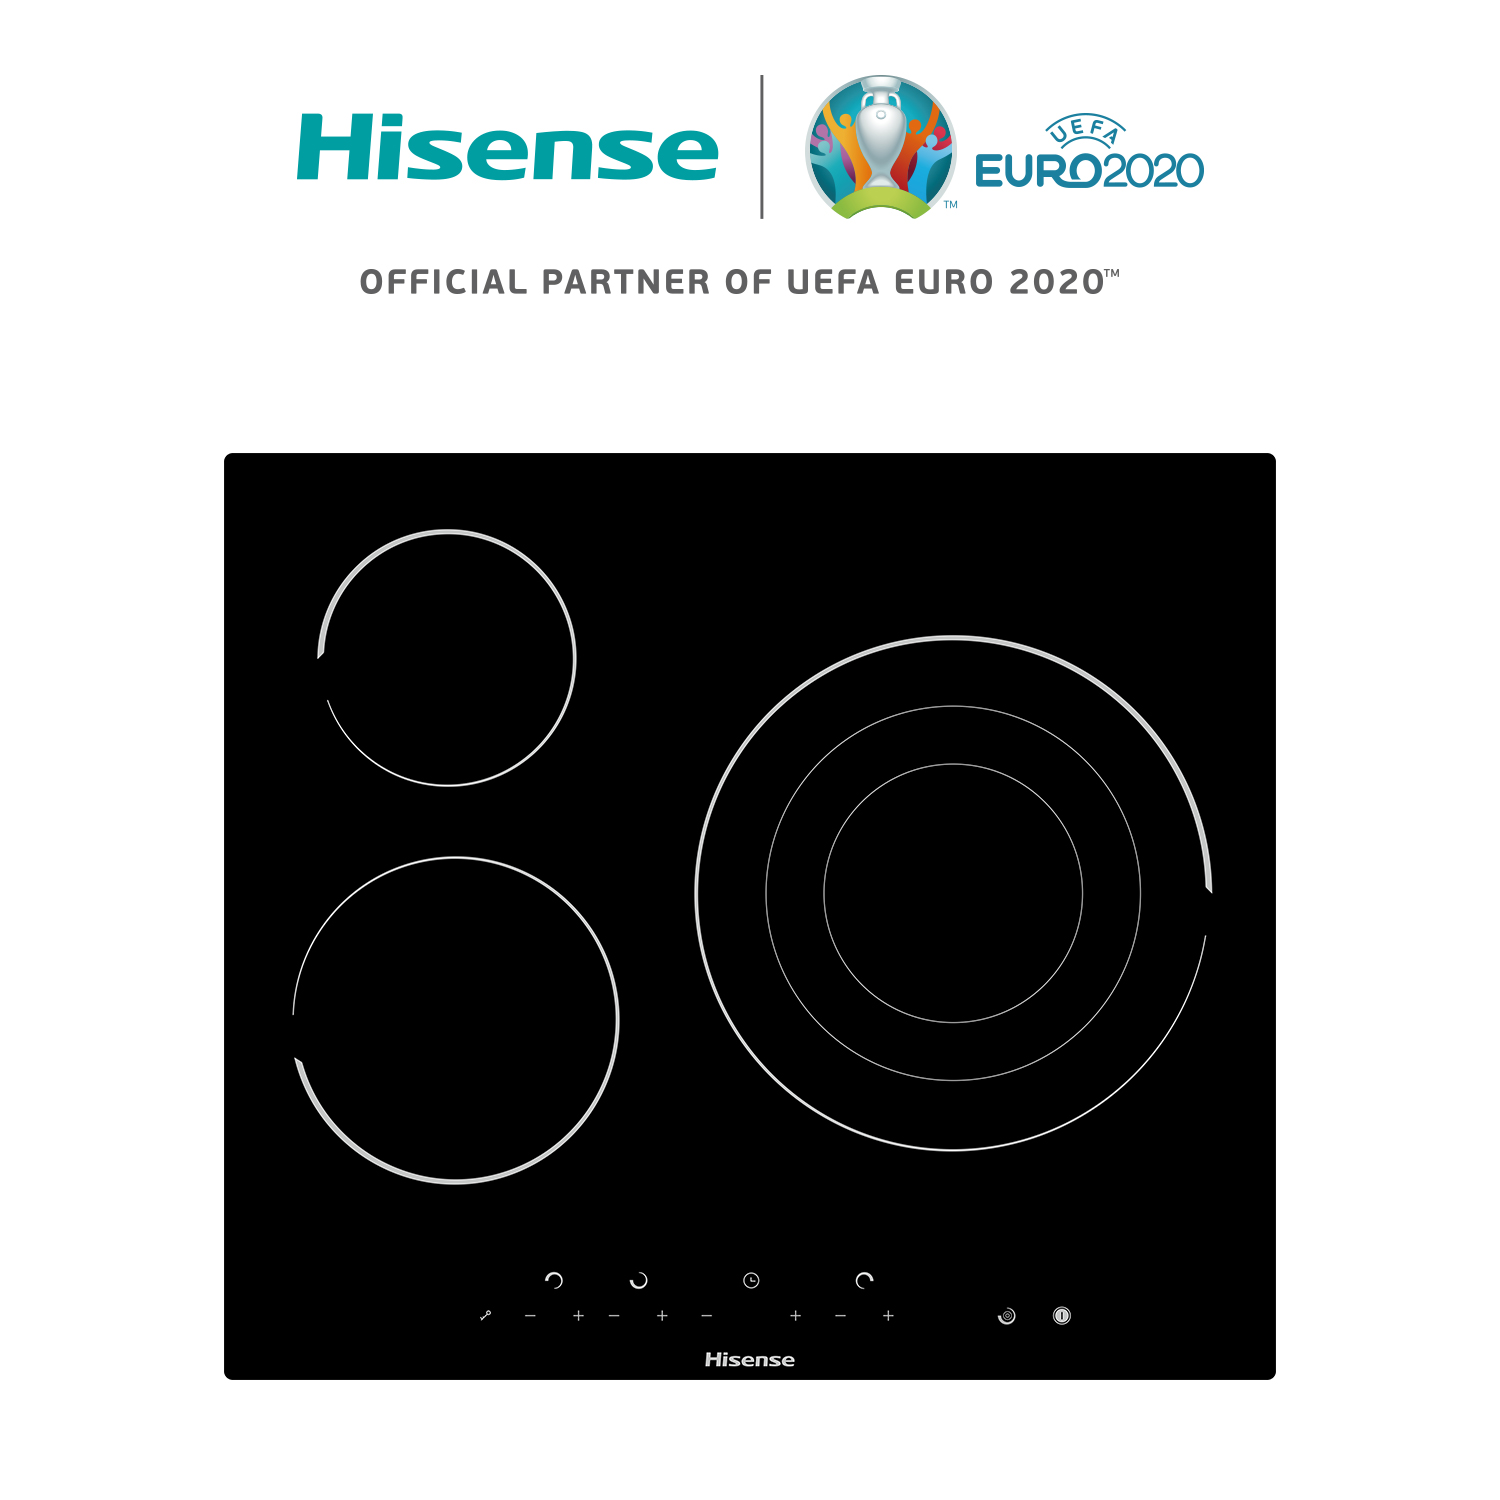 Hisense E6322C Ceramic Hob, Induction Cooker, Ceramic Glass Panel, 3 Burners, 5700 W, 59 × 6 × 52 Cm